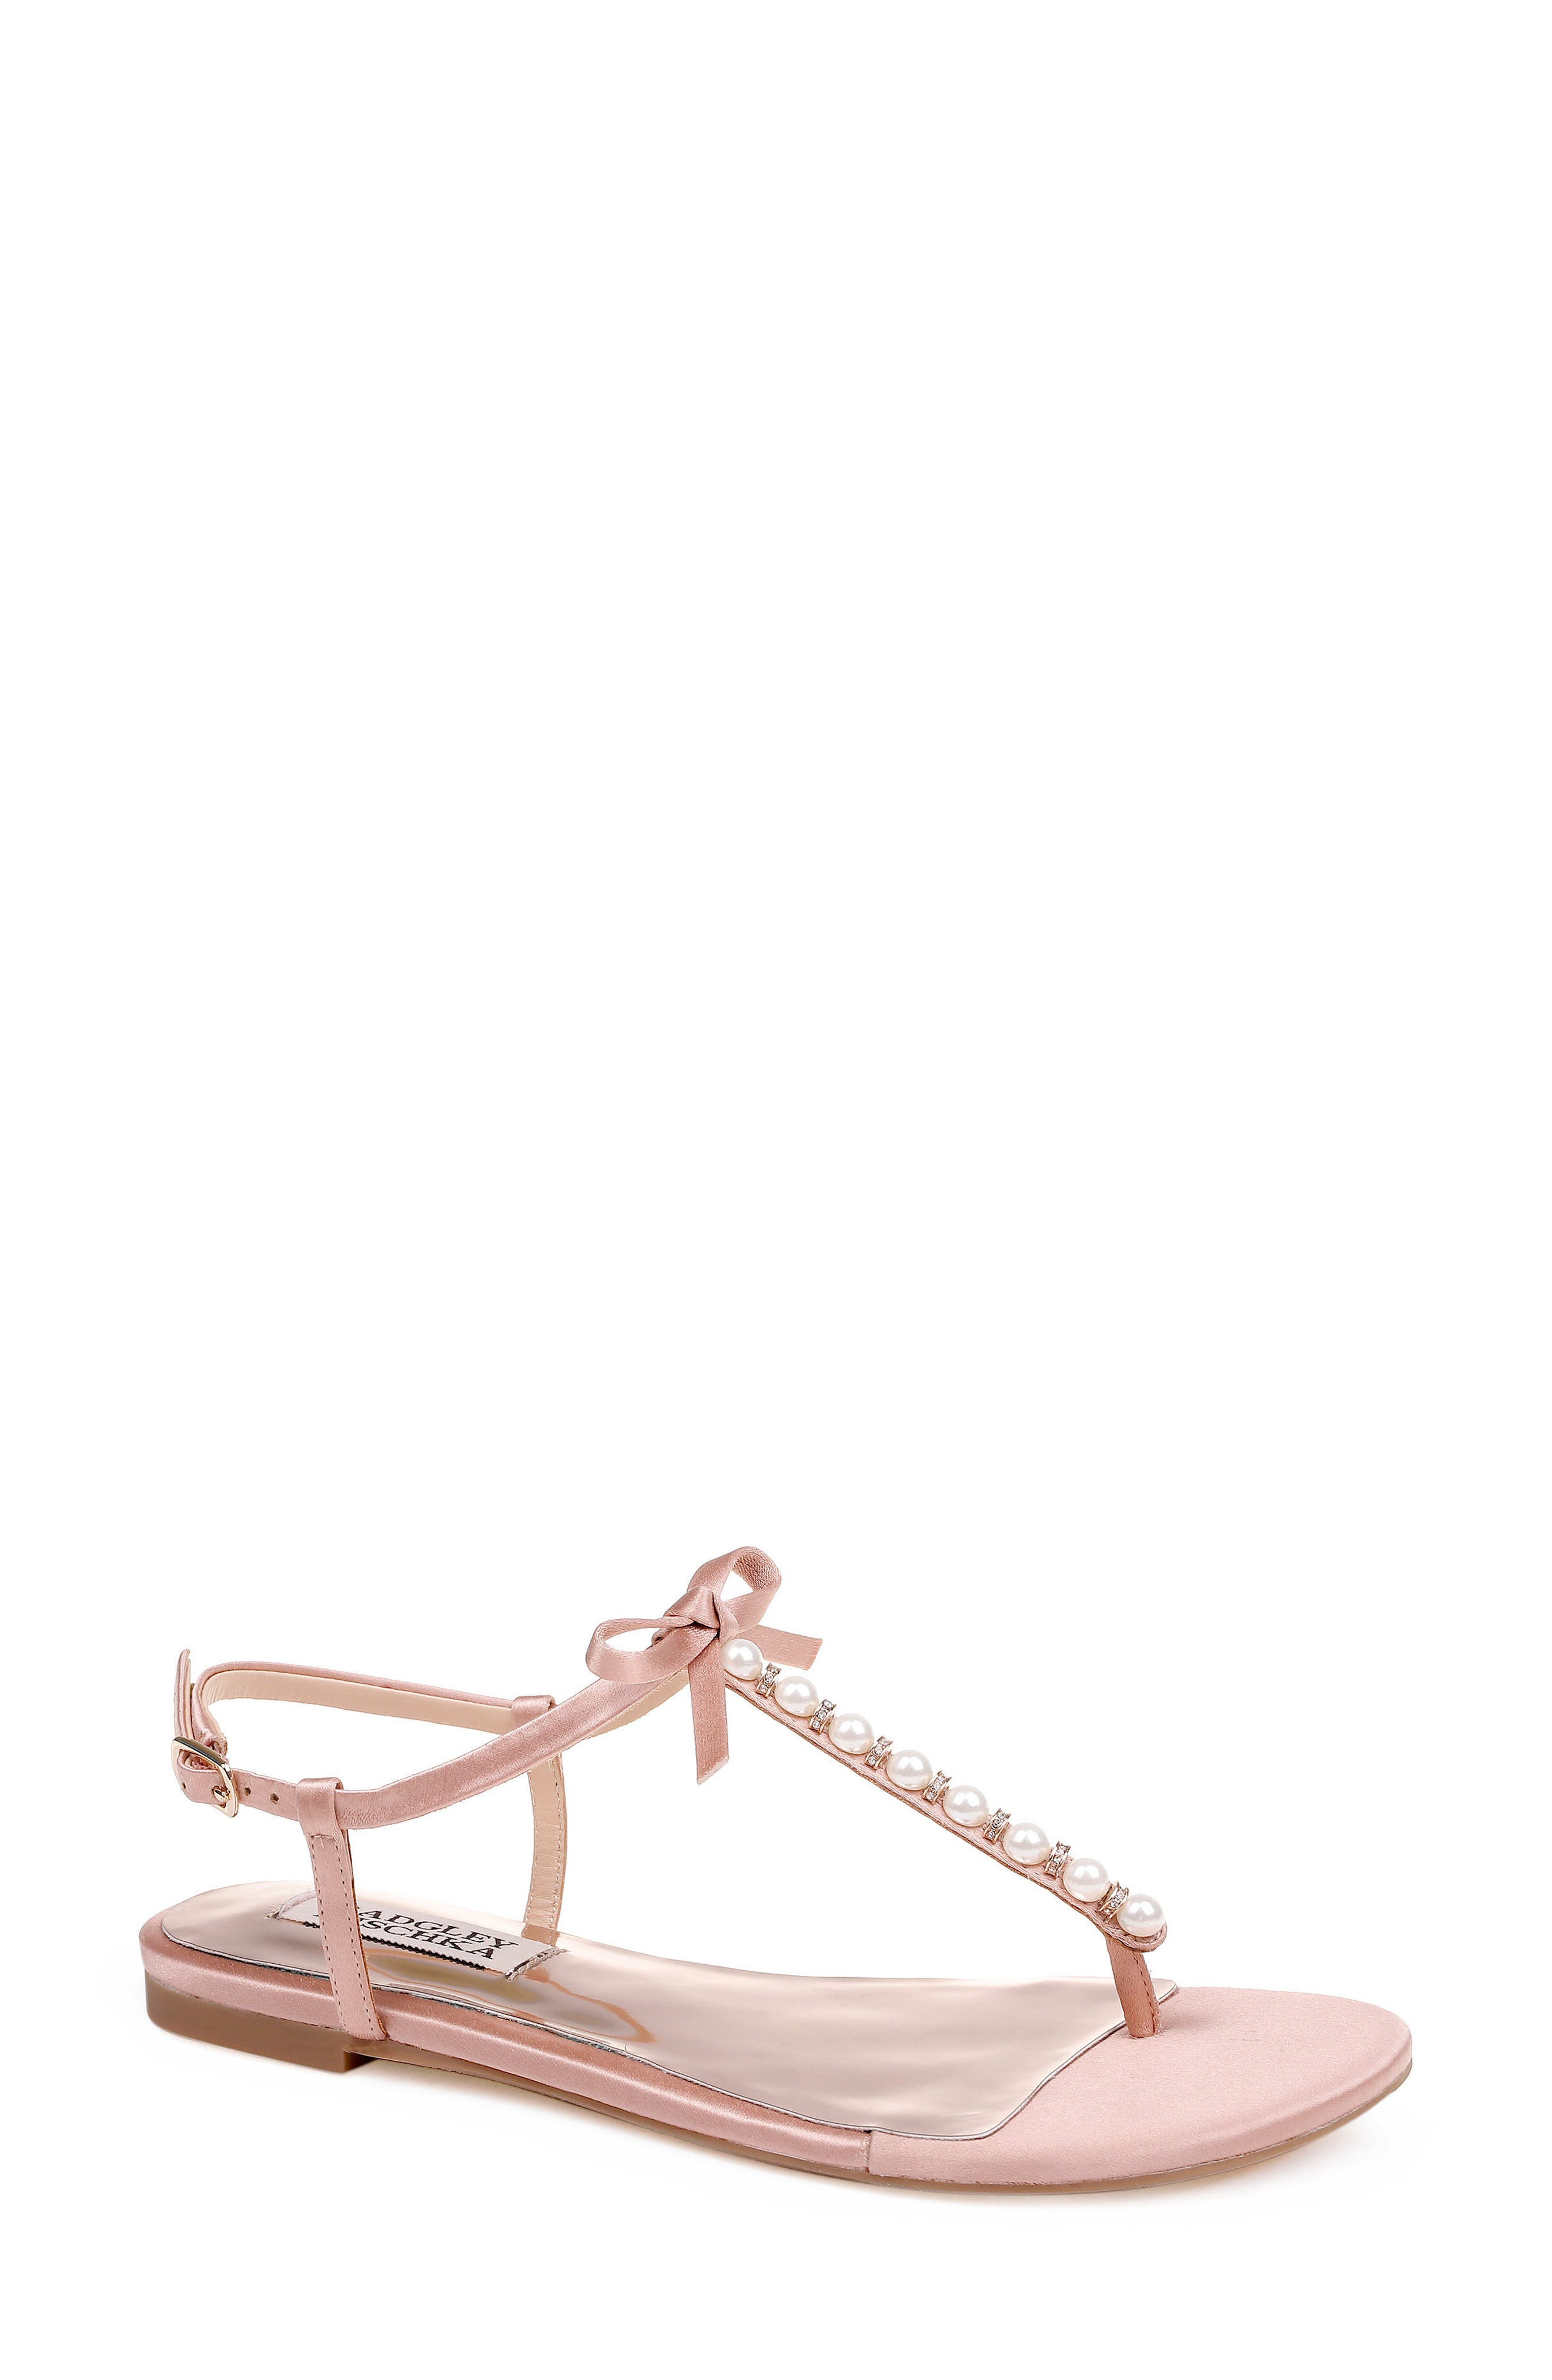 Honey Embellished Sandal,                         Main,                         color, Dark Pink Satin